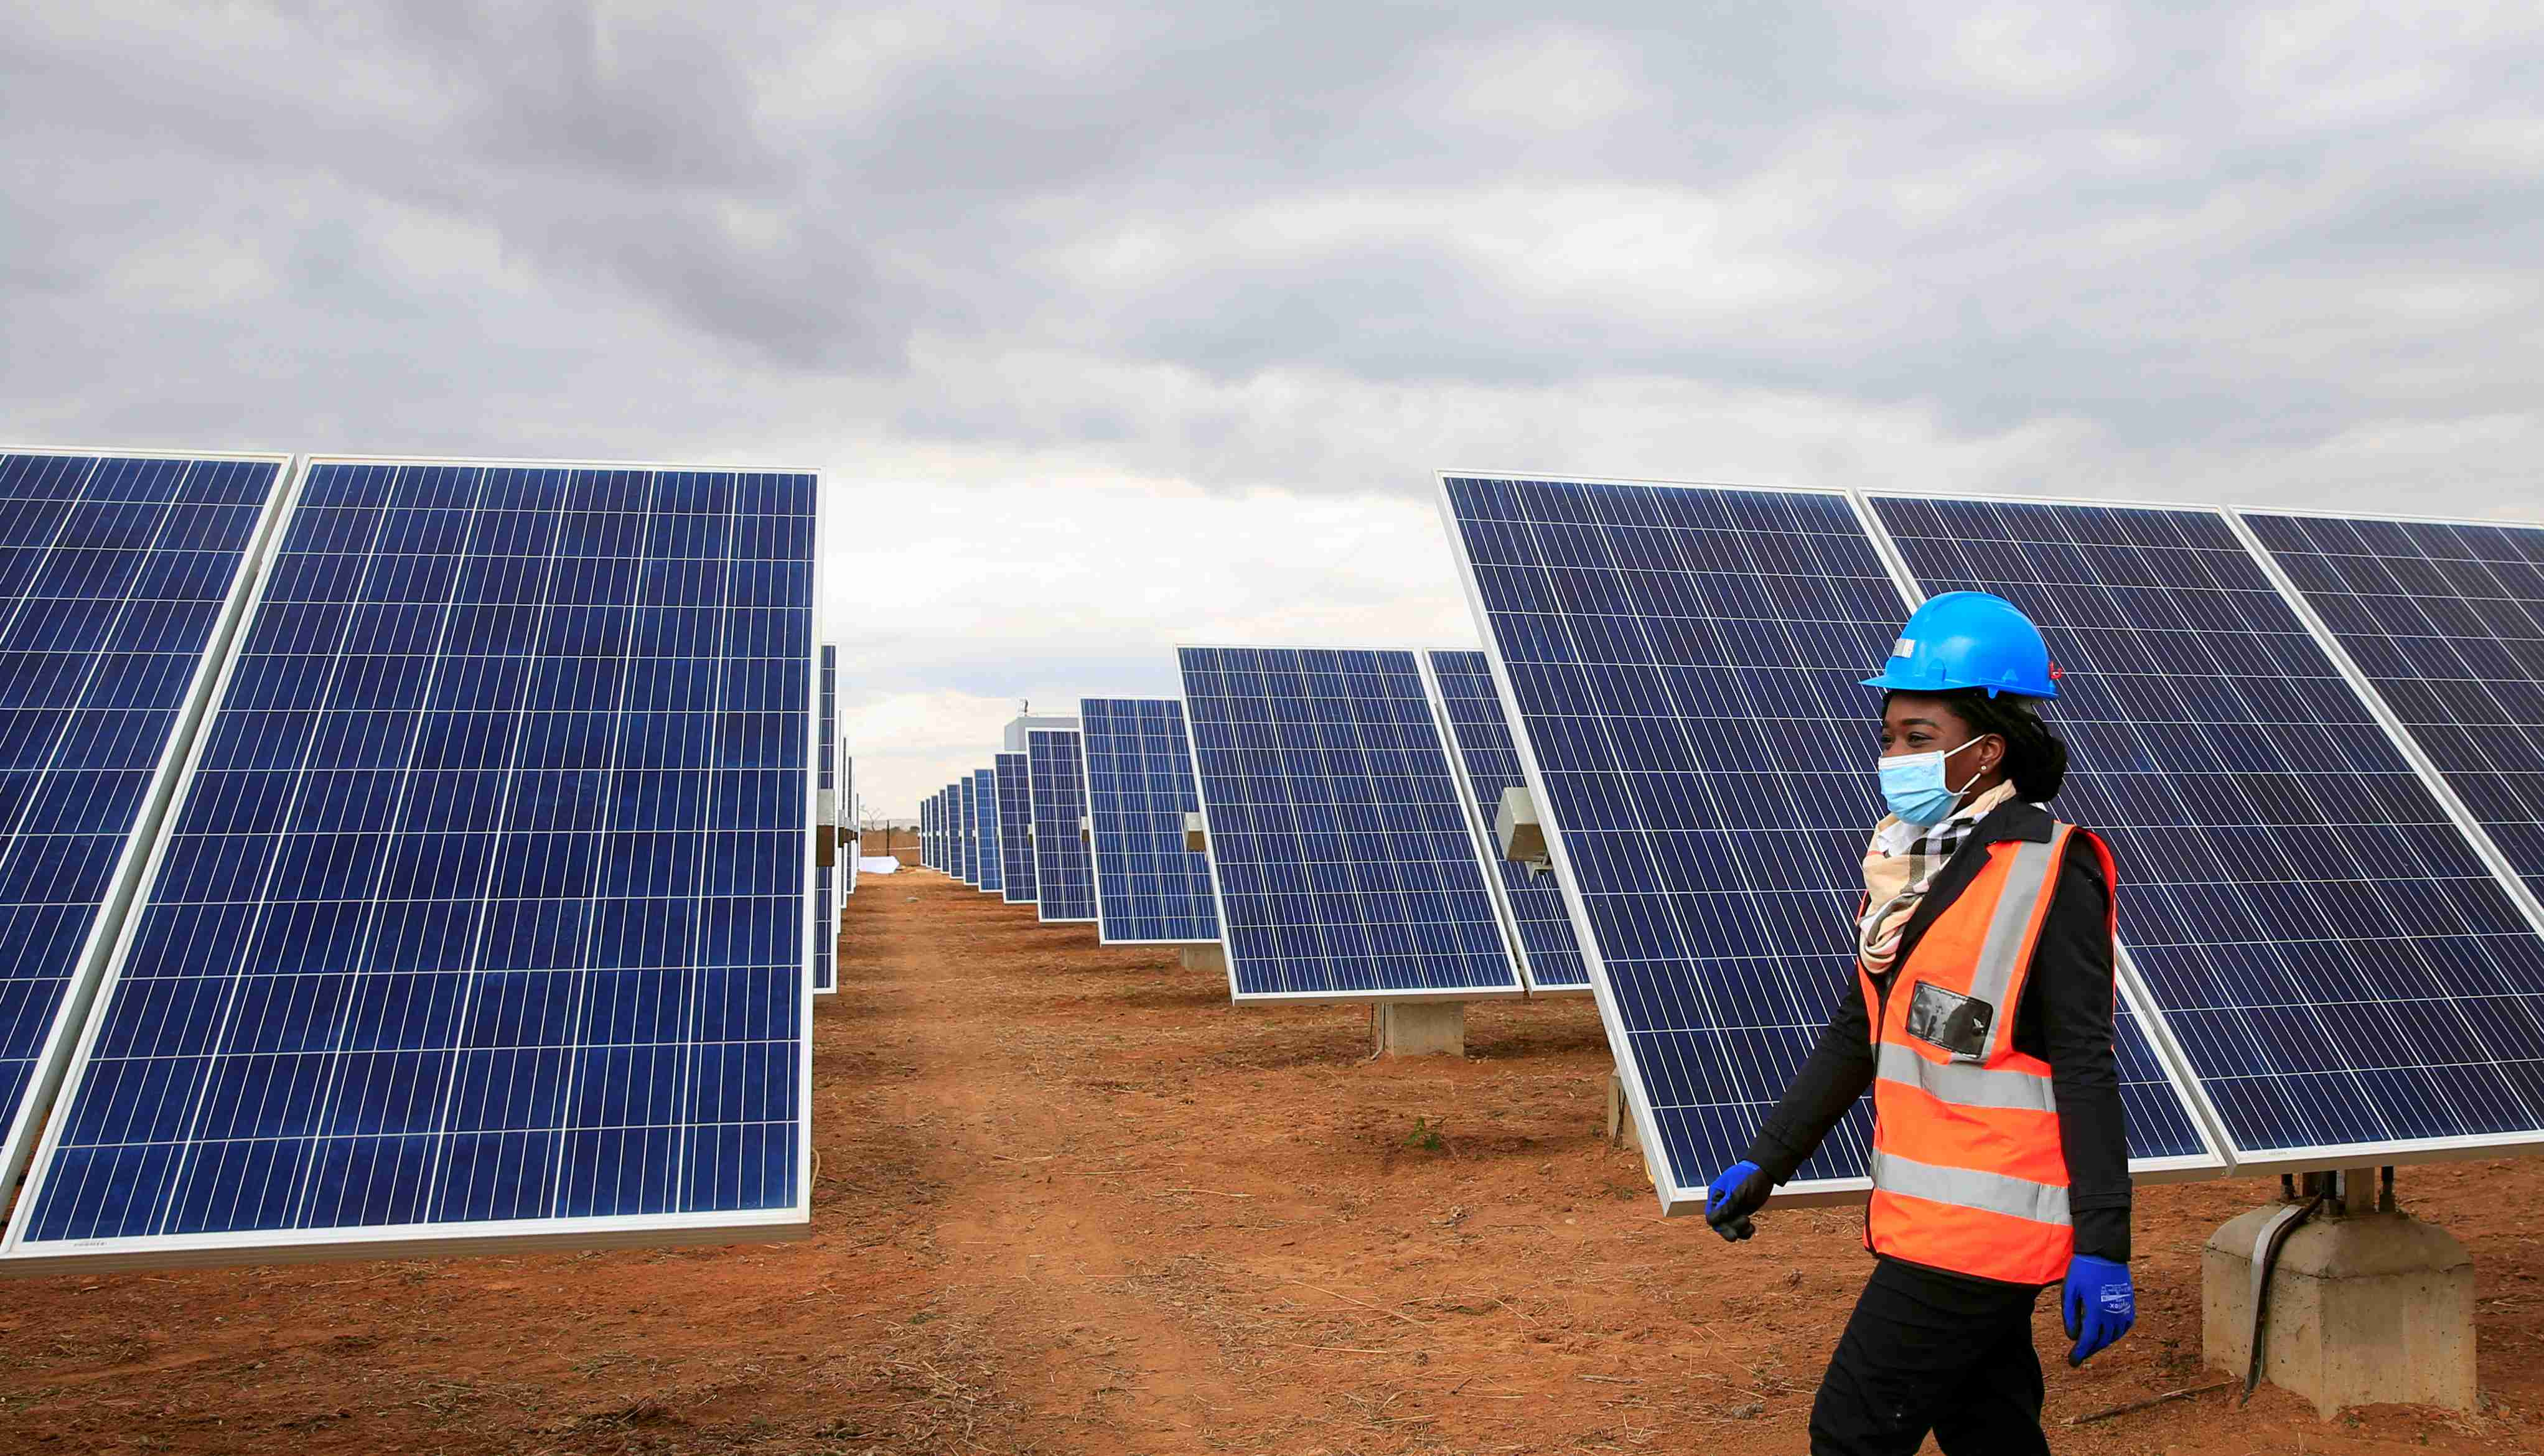 A worker walks past solar panels at Centragrid power plant in Nyabira, Zimbabwe, June 22, 2020. Picture taken June 22, 2020. REUTERS/Philimon Bulawayo